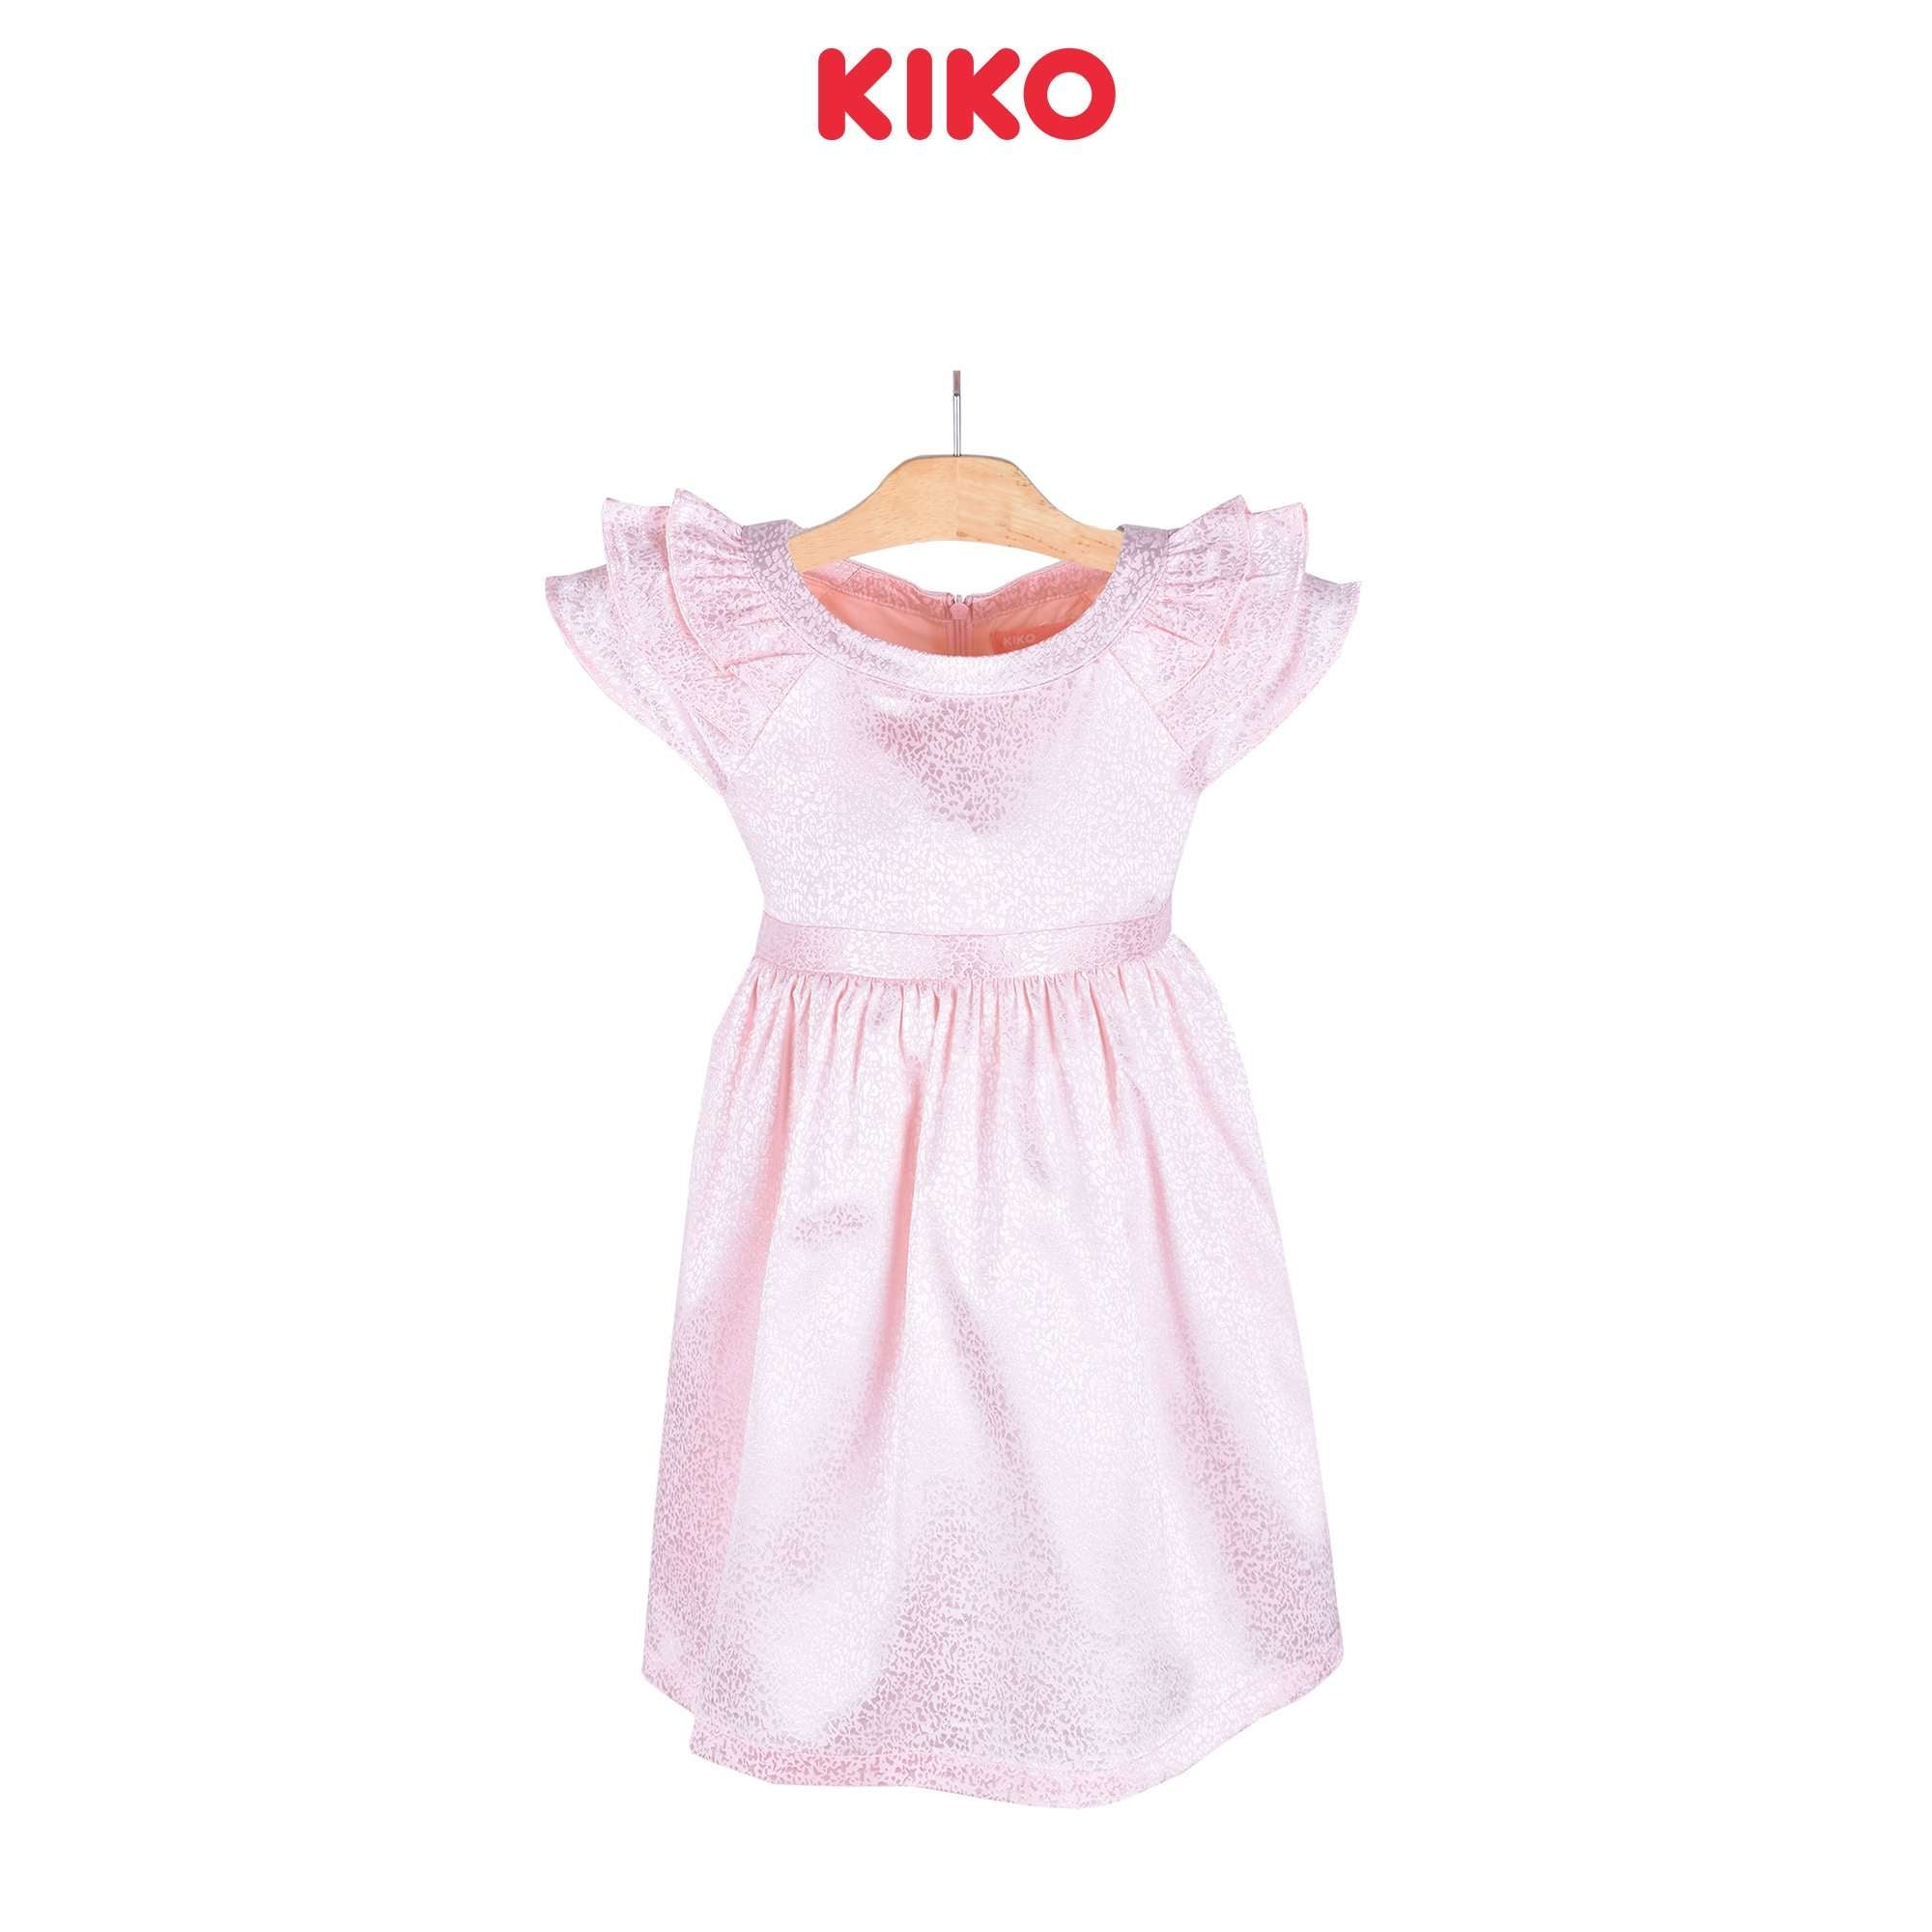 KIKO Girl Short Sleeve Dress Woven - Pink 115058-312 : Buy KIKO online at CMG.MY